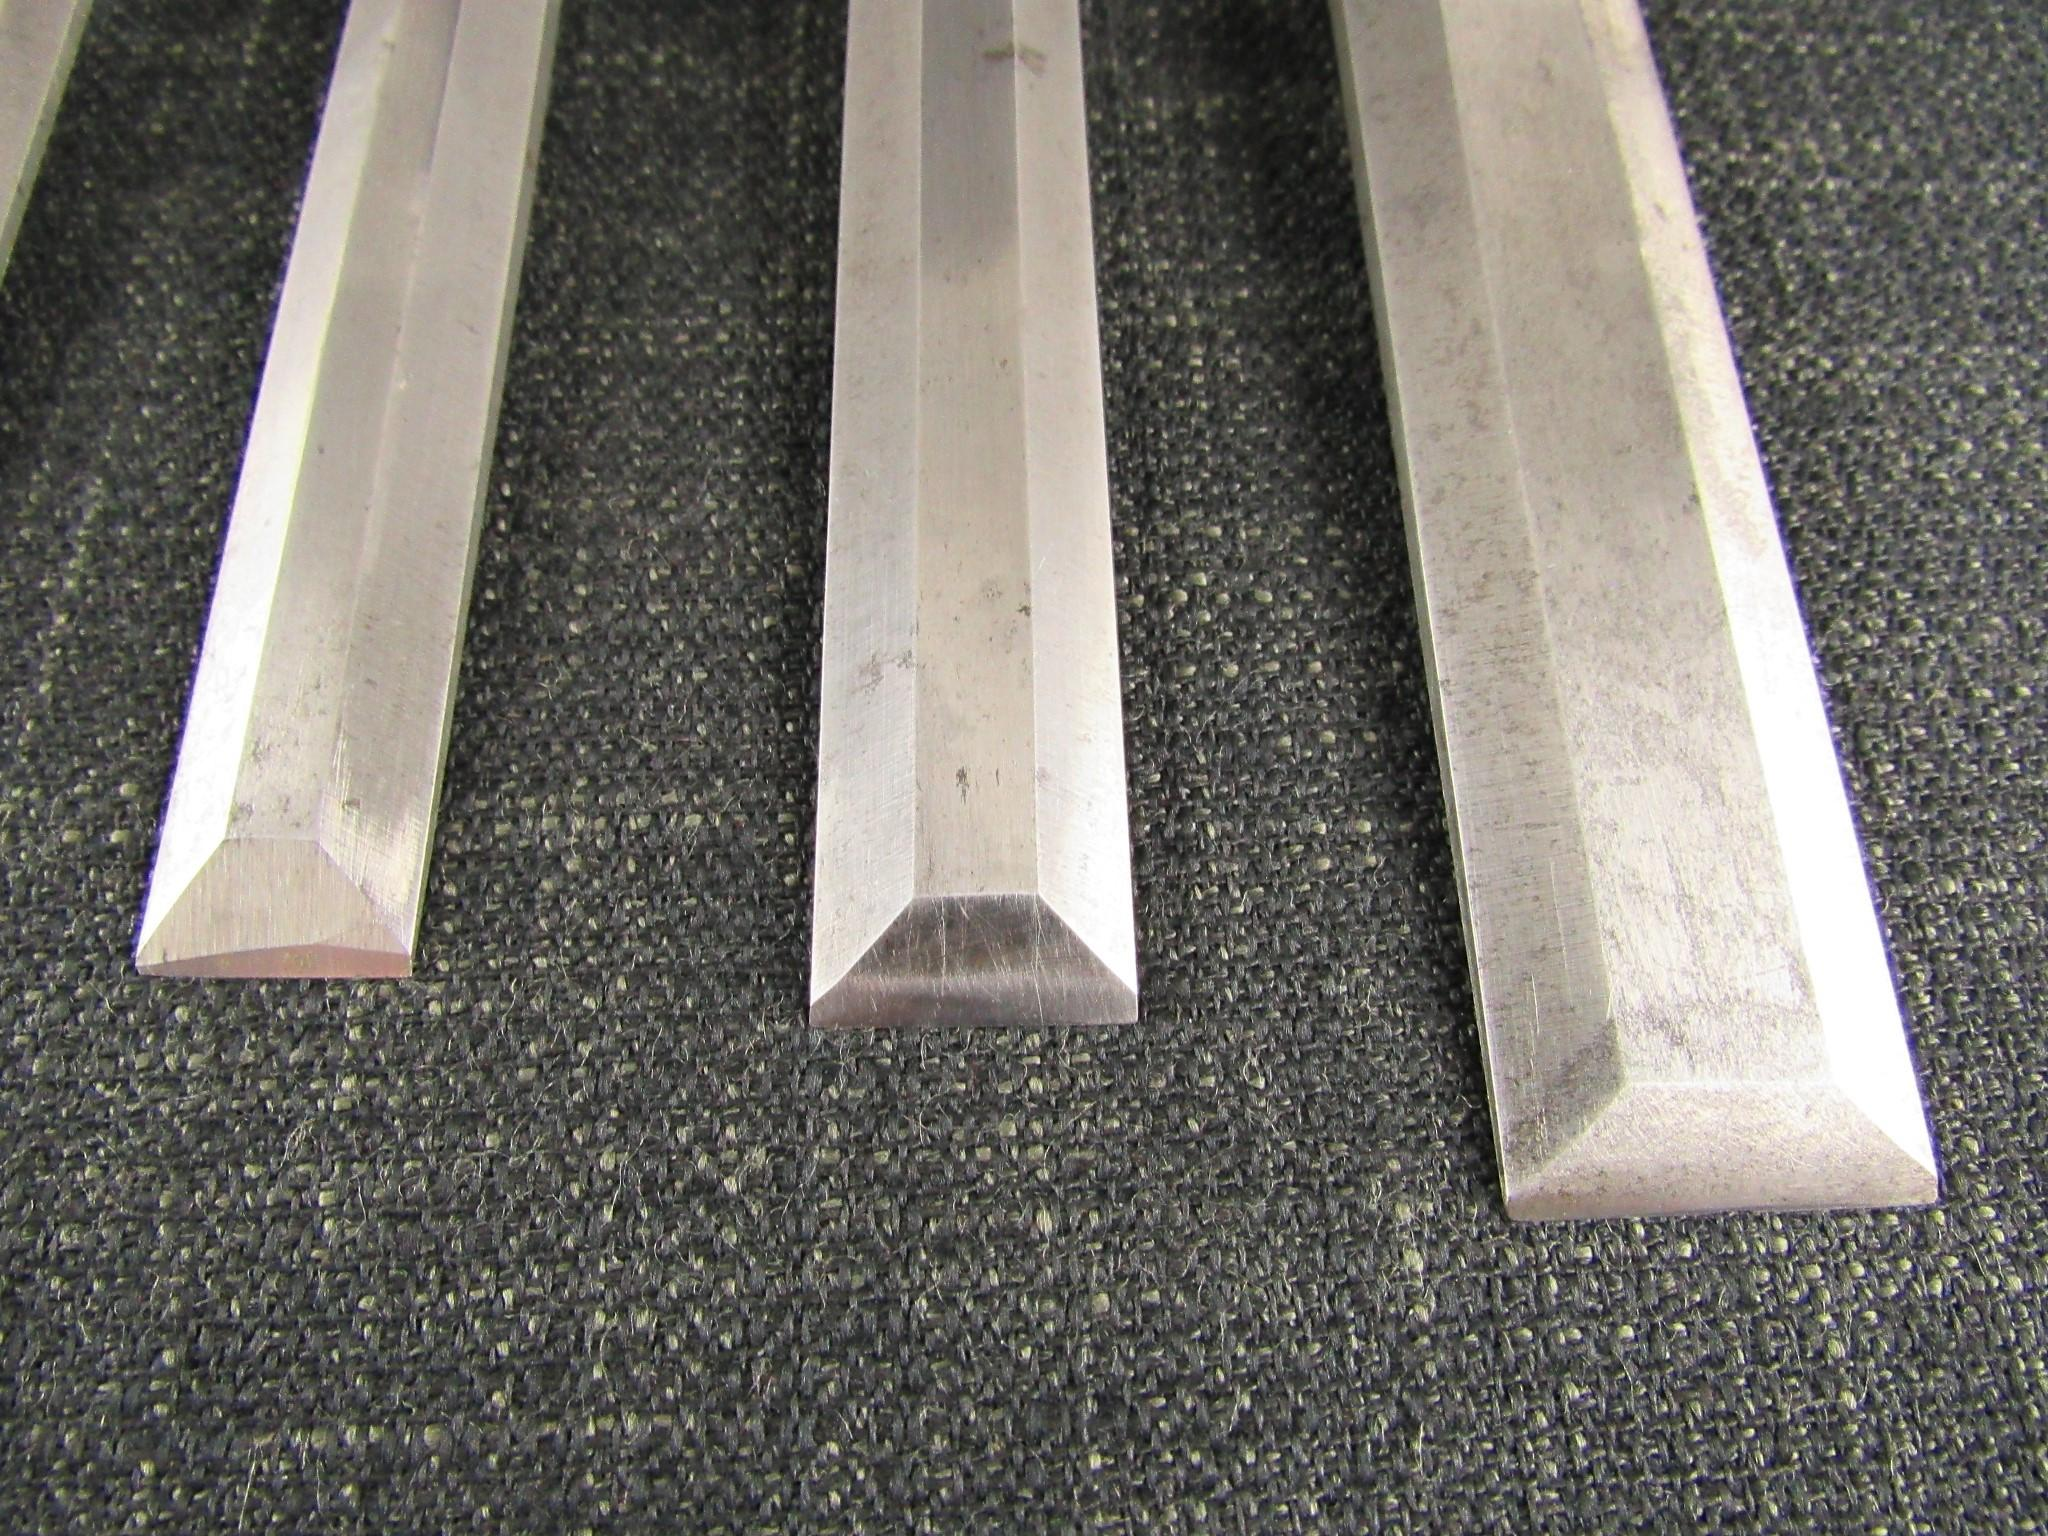 Graduated Set of 6 EA BERG Bevel Edge Chisels